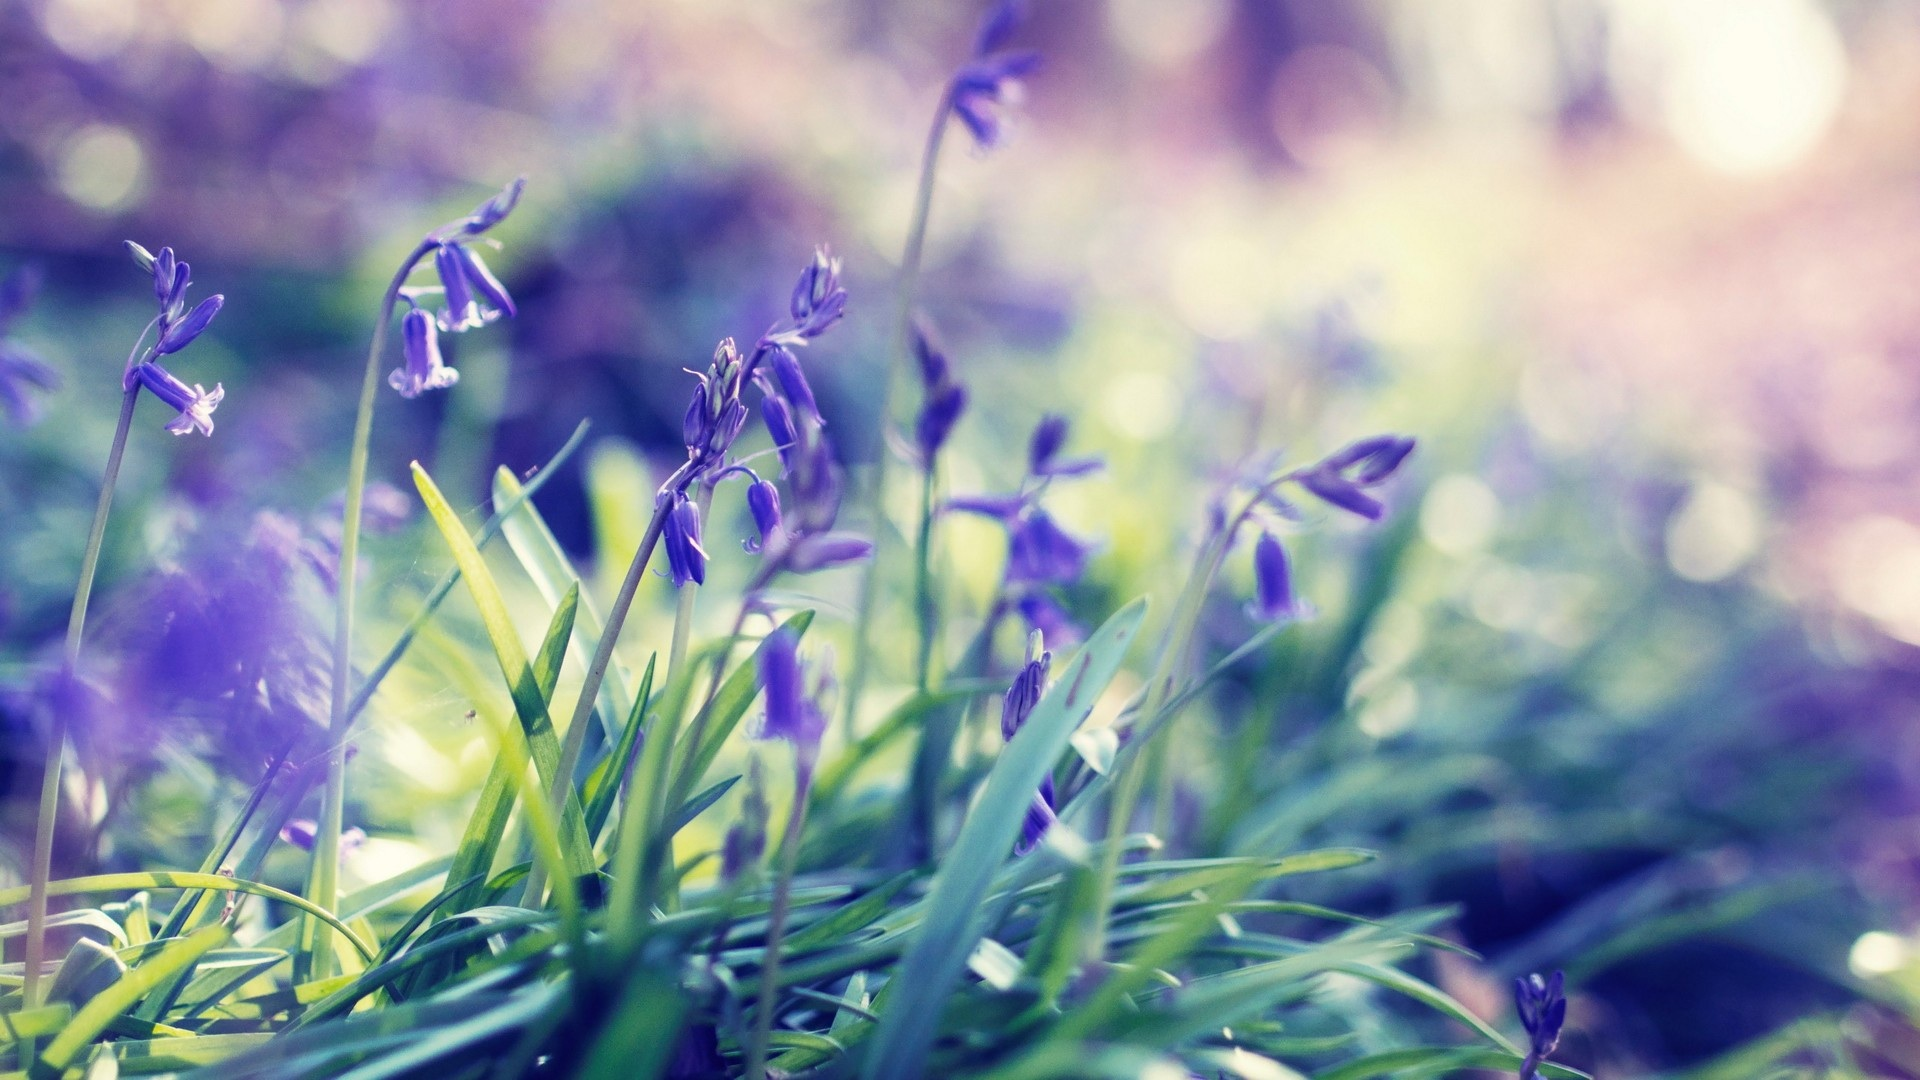 Wallpaper hd spring flowers picture pic wpb00412 wallpaper download mightylinksfo